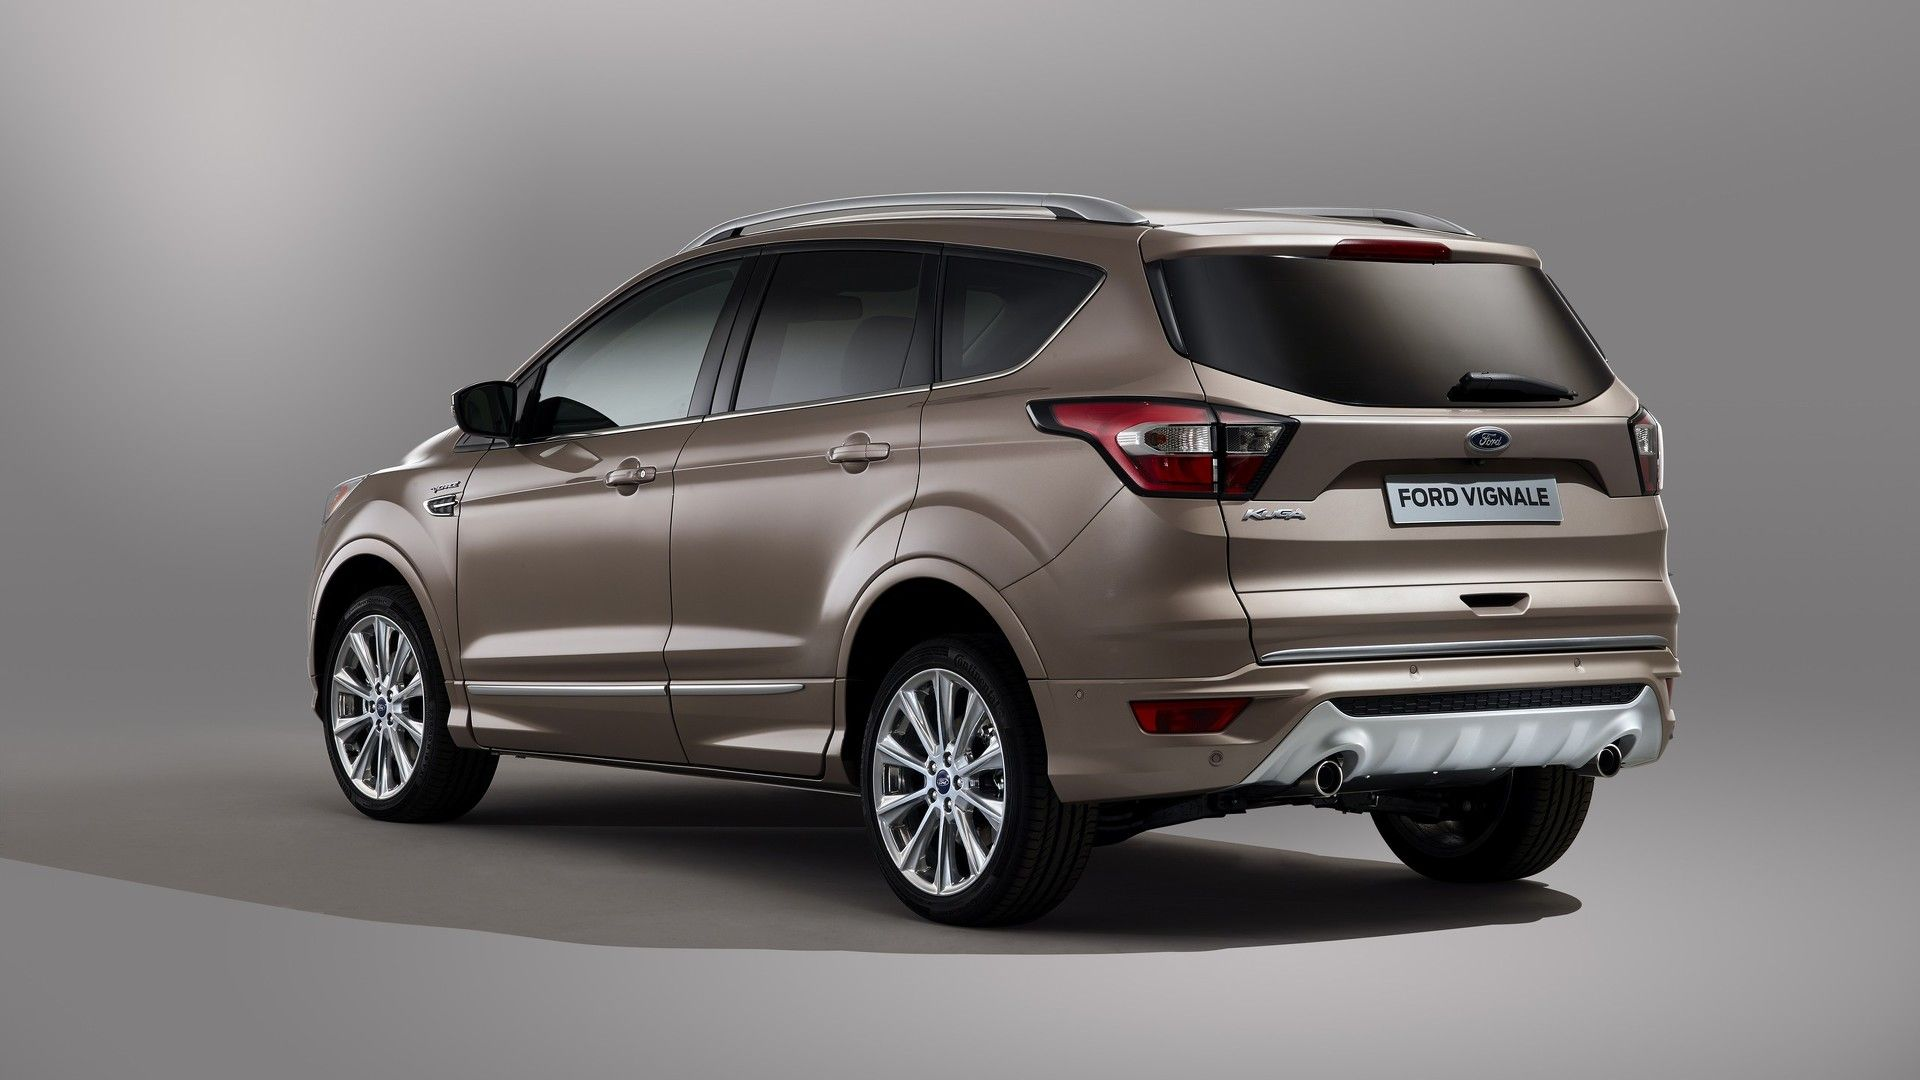 Ford kuga vignale 2017 wei ford kuga 2017 pinterest ford and cars